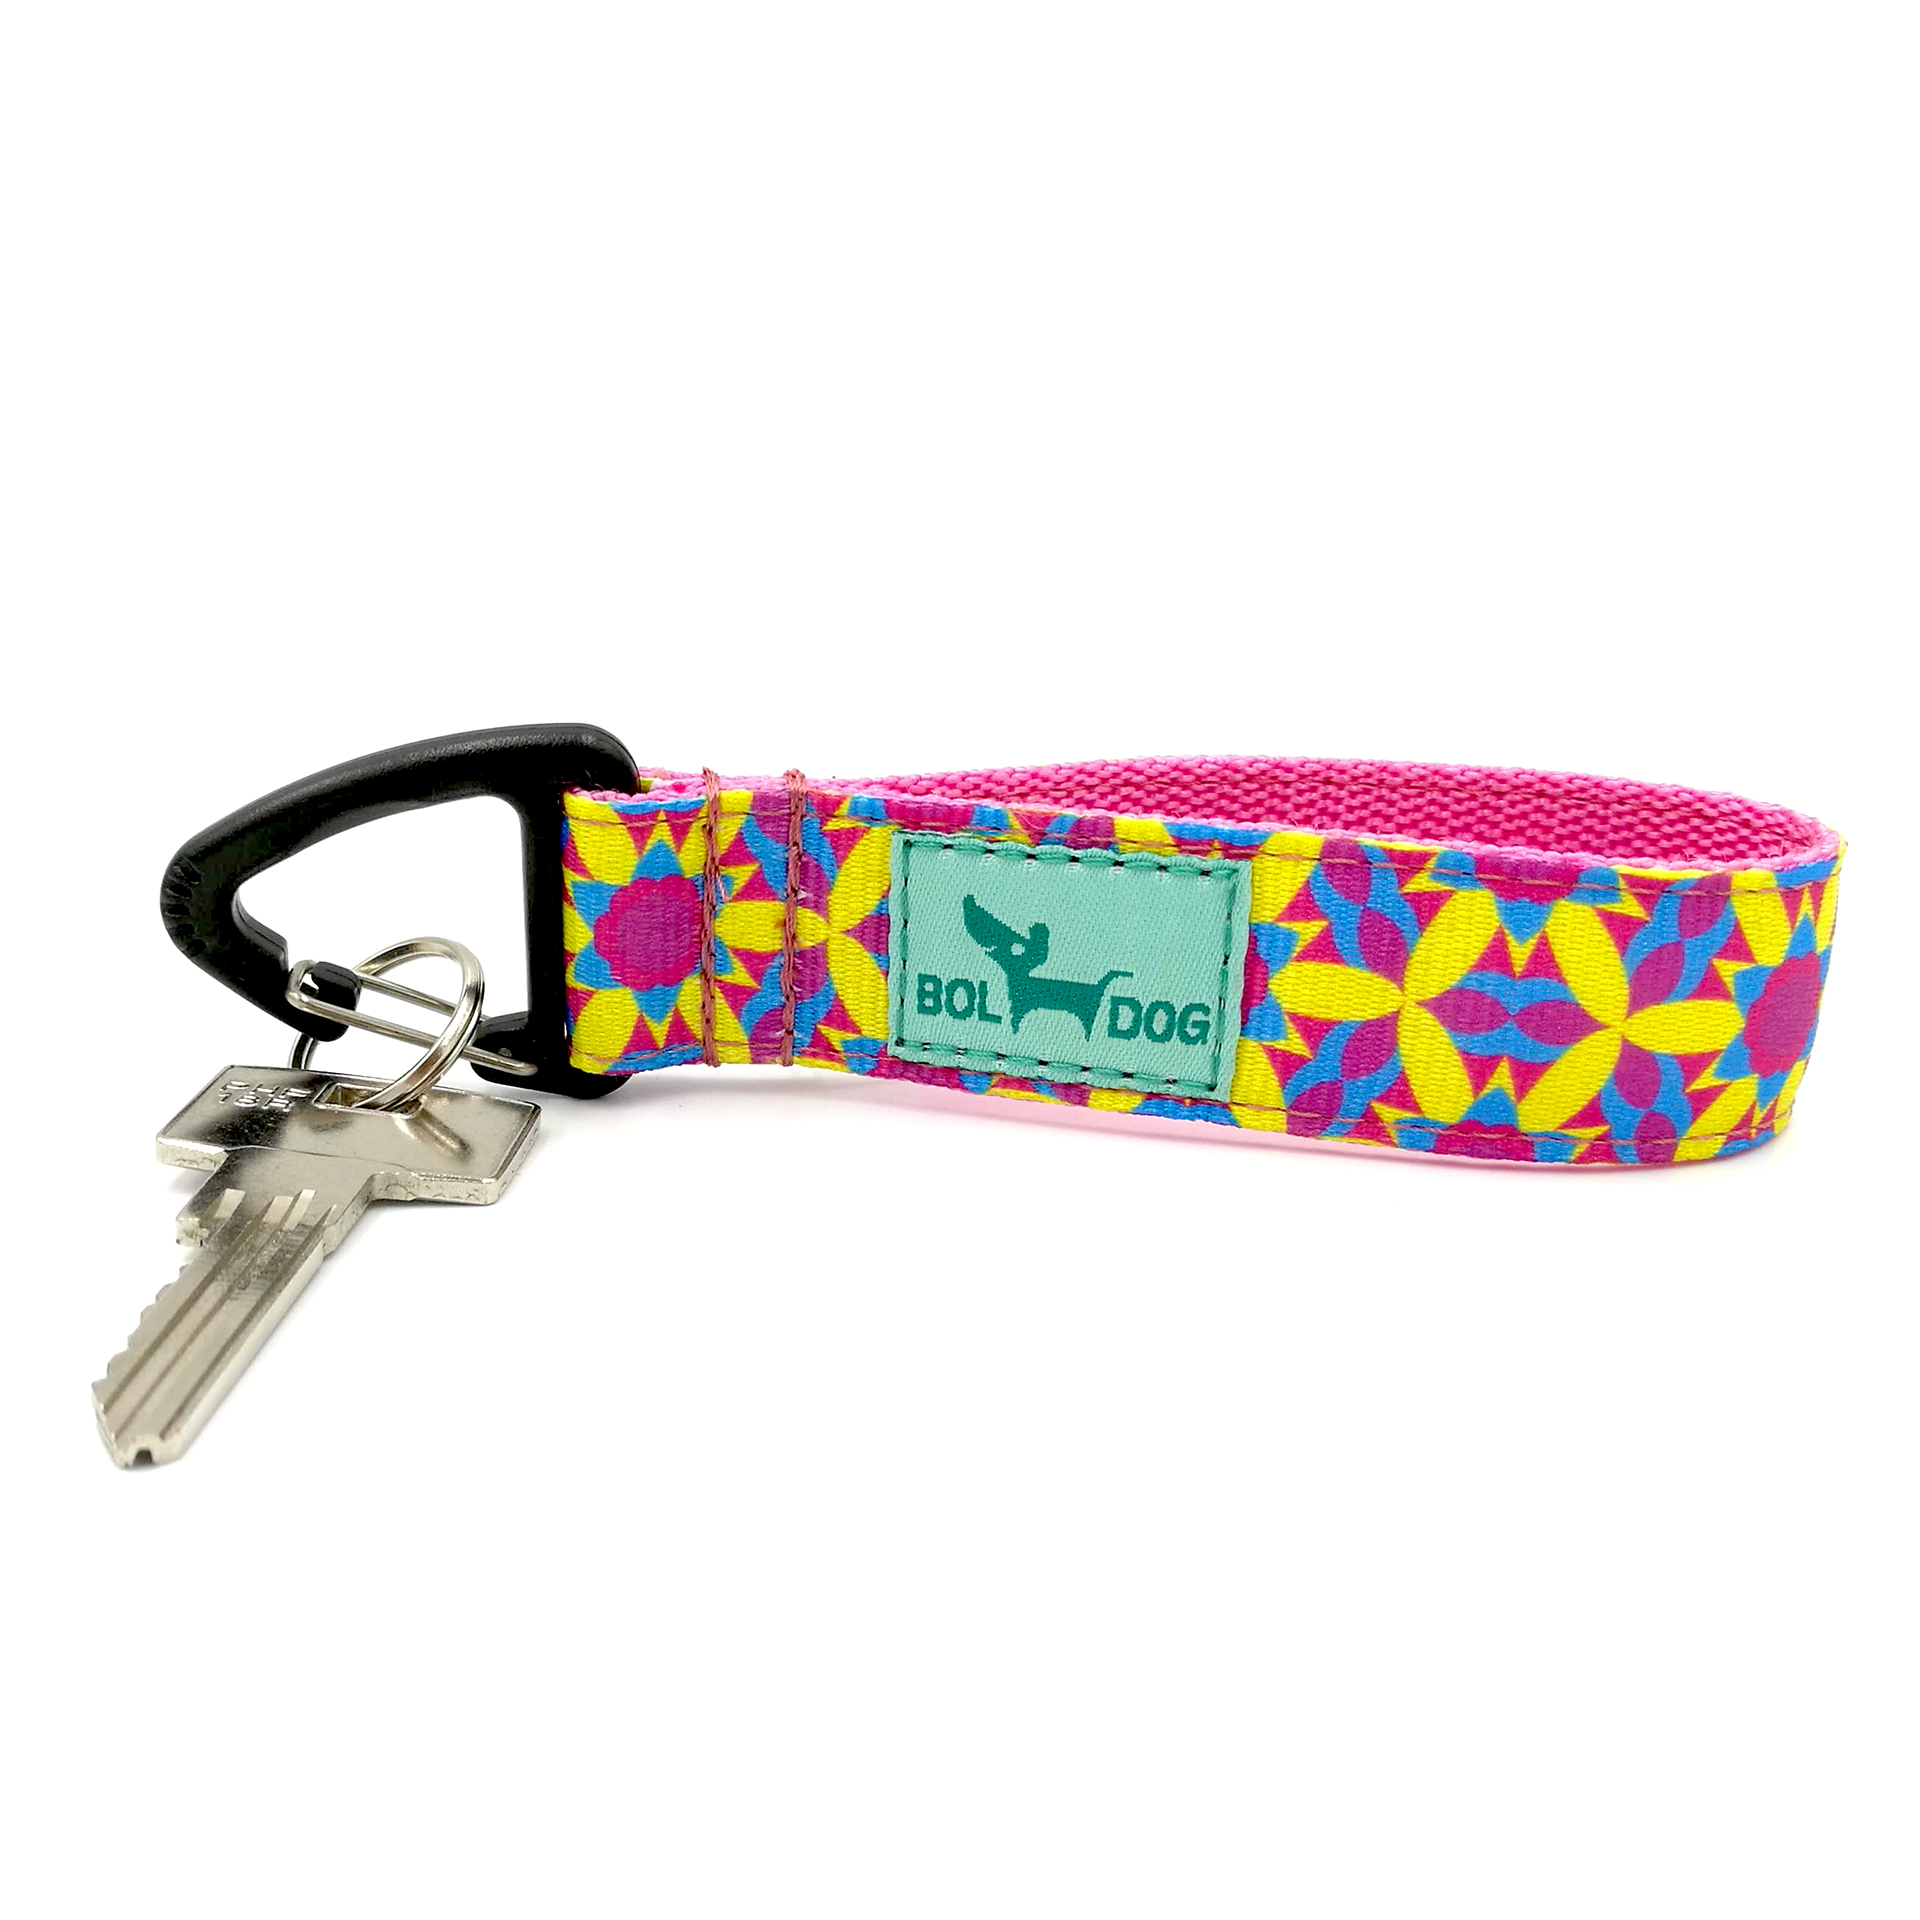 Beauty key holder